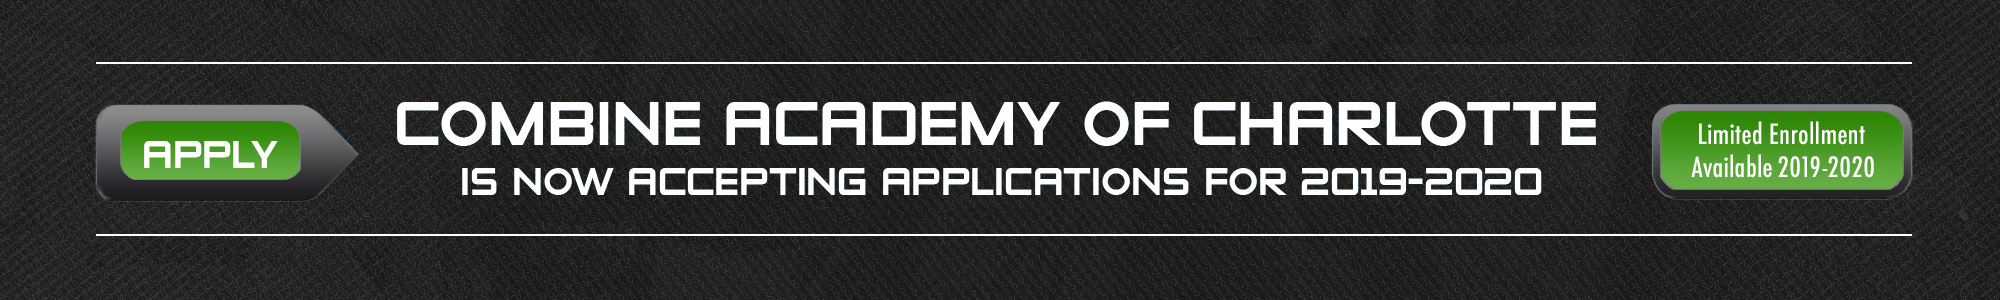 Combine Academy Banner Apply Now